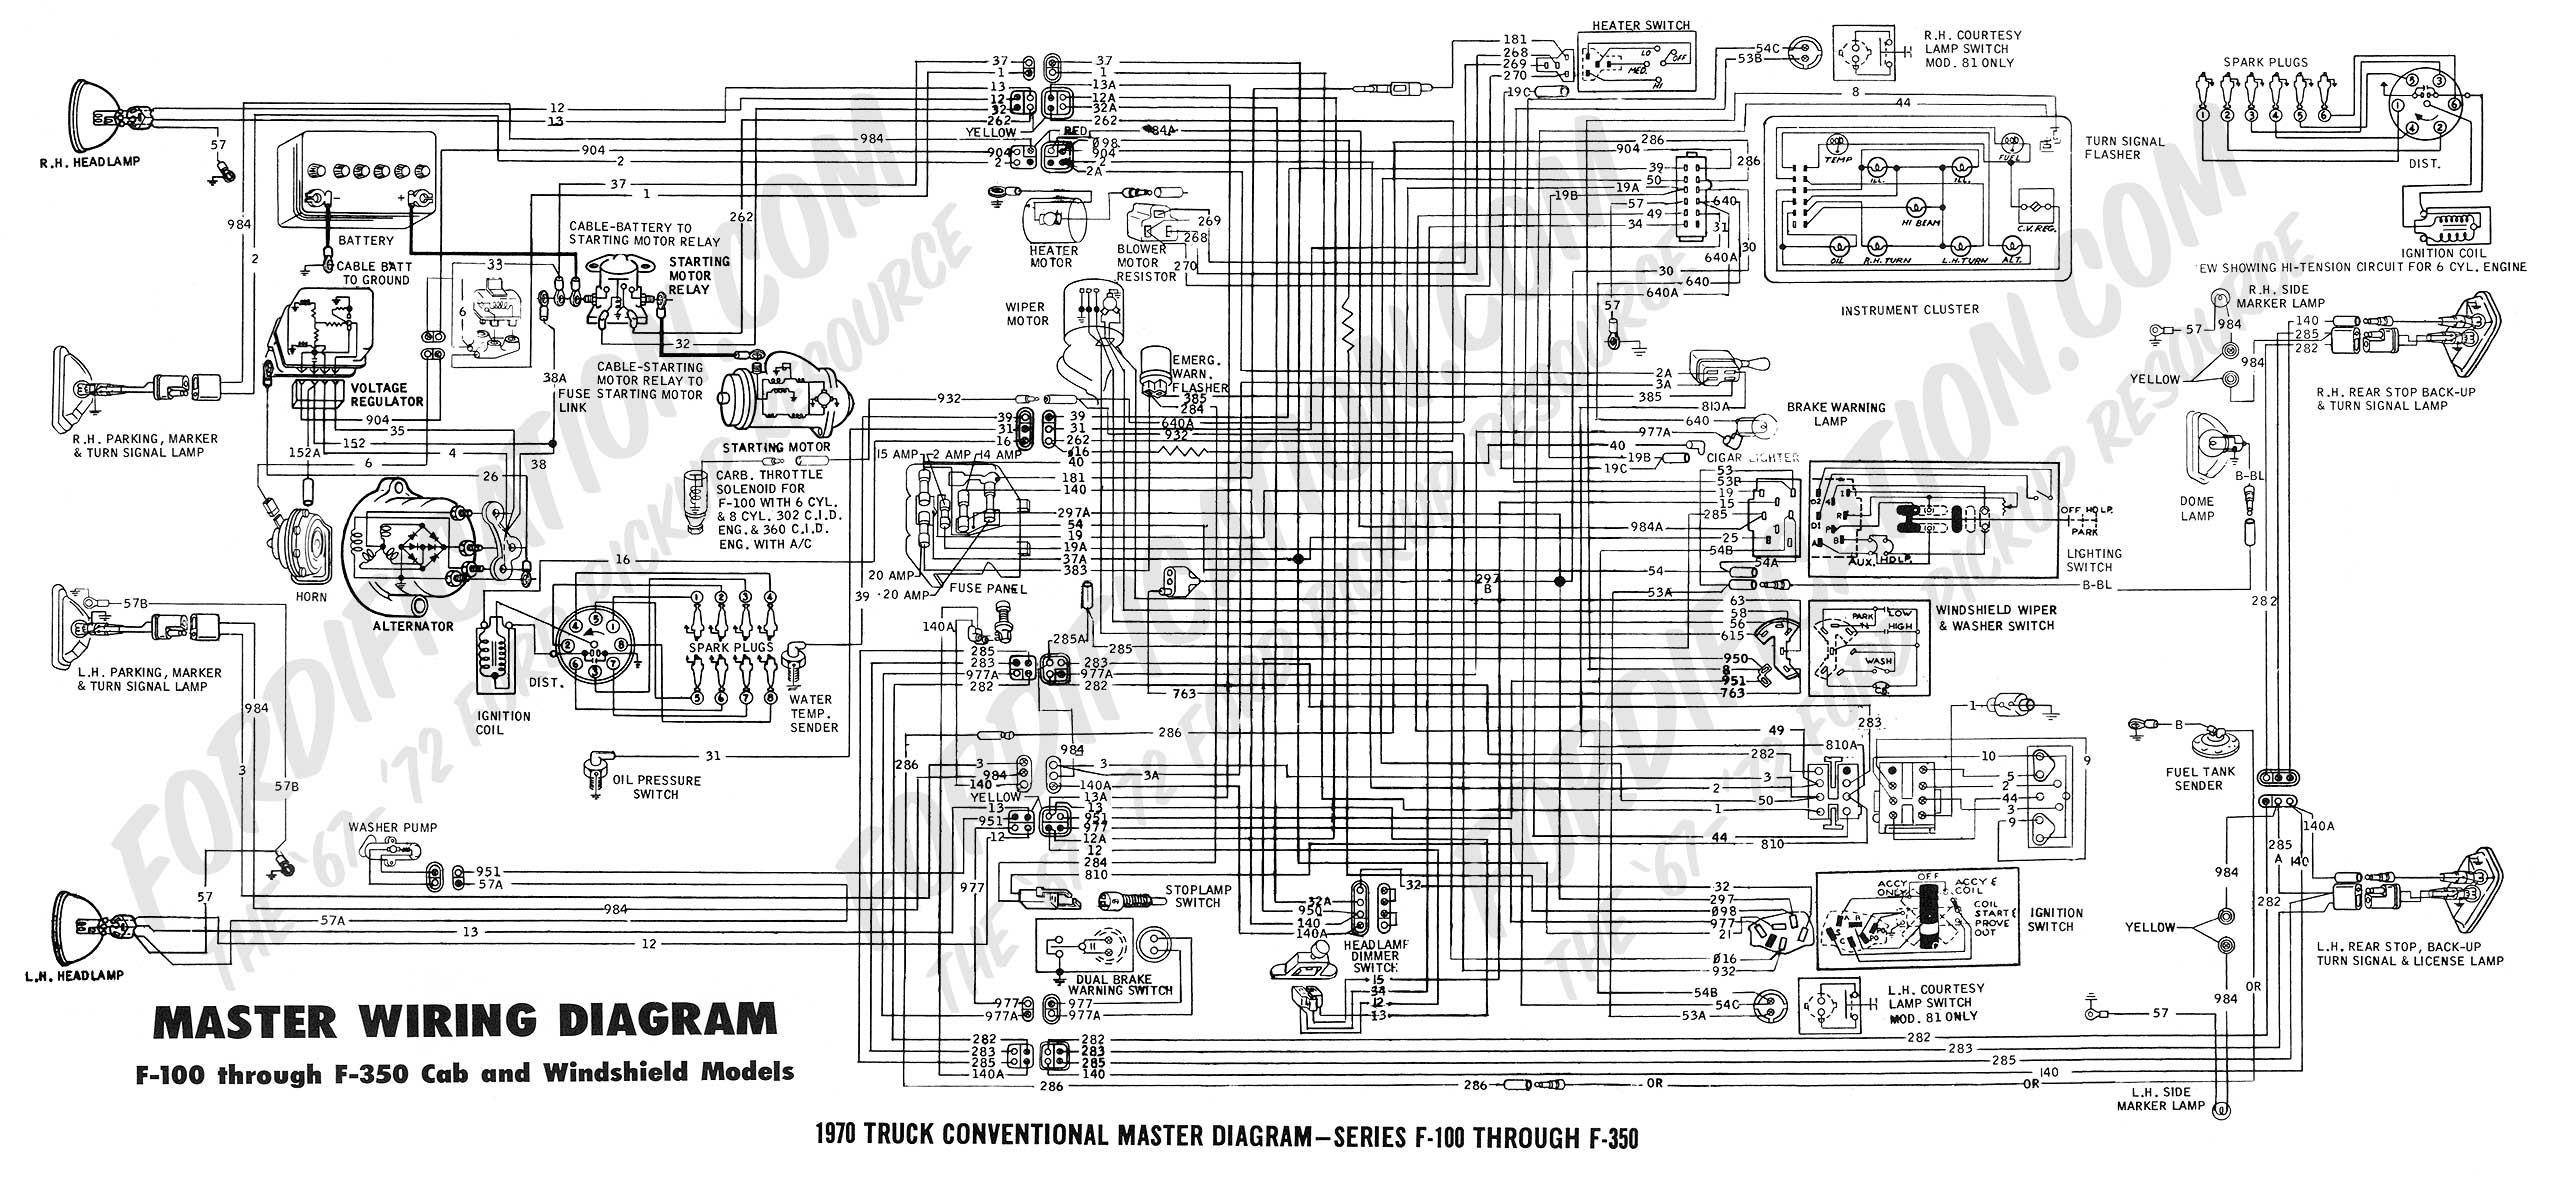 1970 f250 wiring diagram trusted schematics wiring diagrams u2022 rh bestbooksrichtreasures com 1983 mustang ignition wiring diagram 1983 mustang alternator wiring diagram